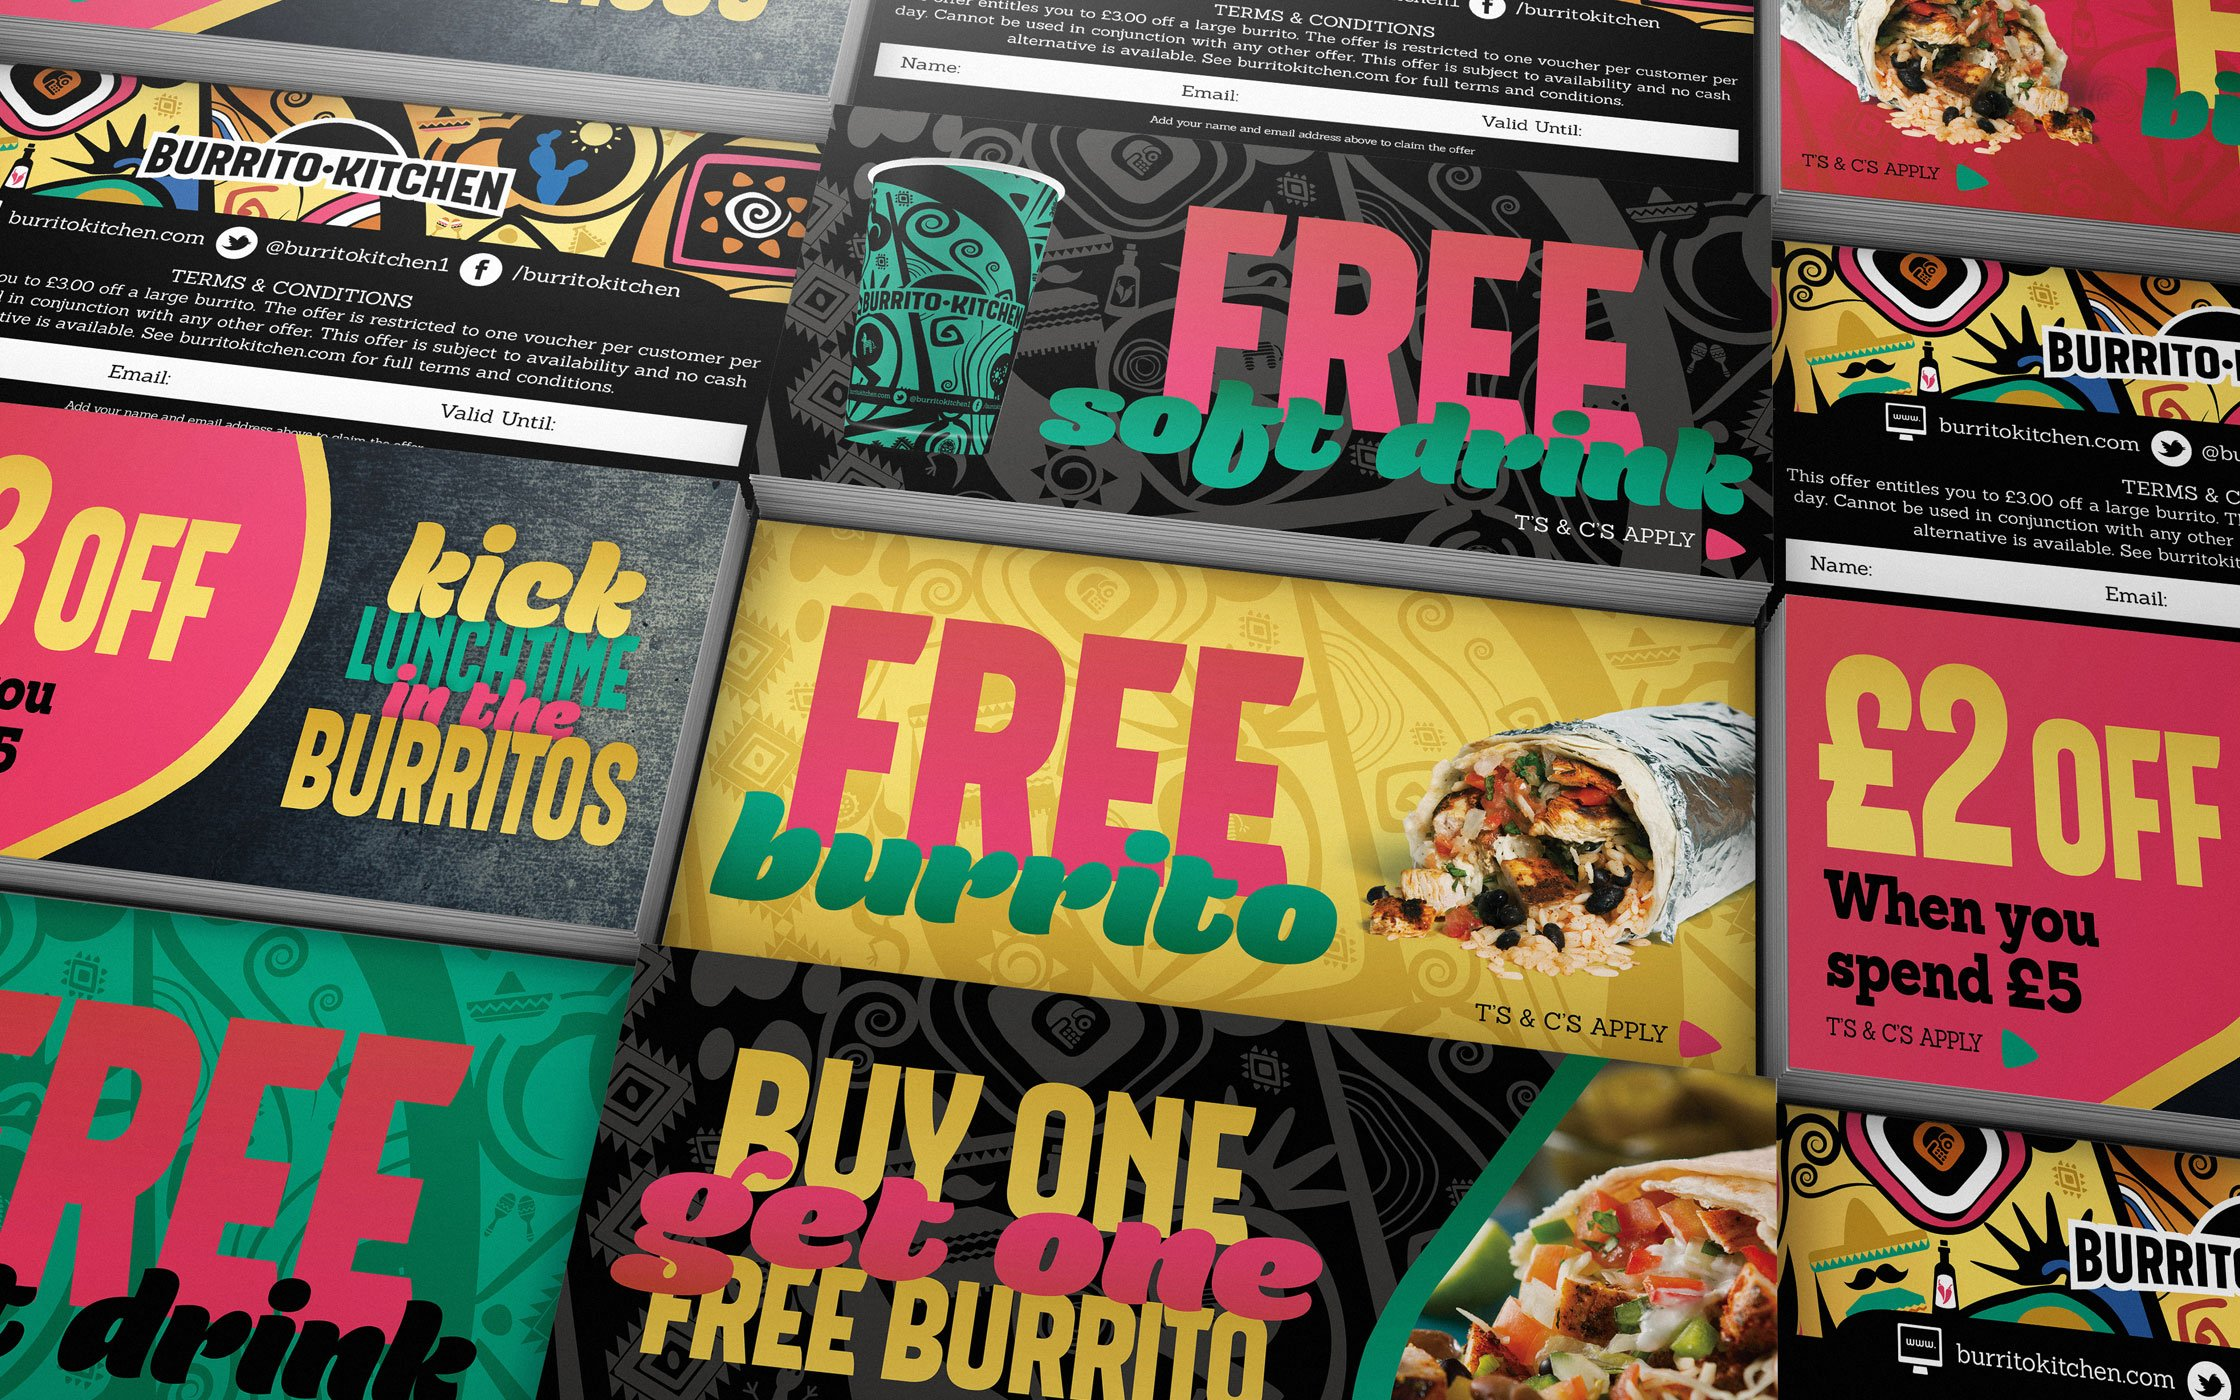 Marketing materials designed for Burrito Kitchen